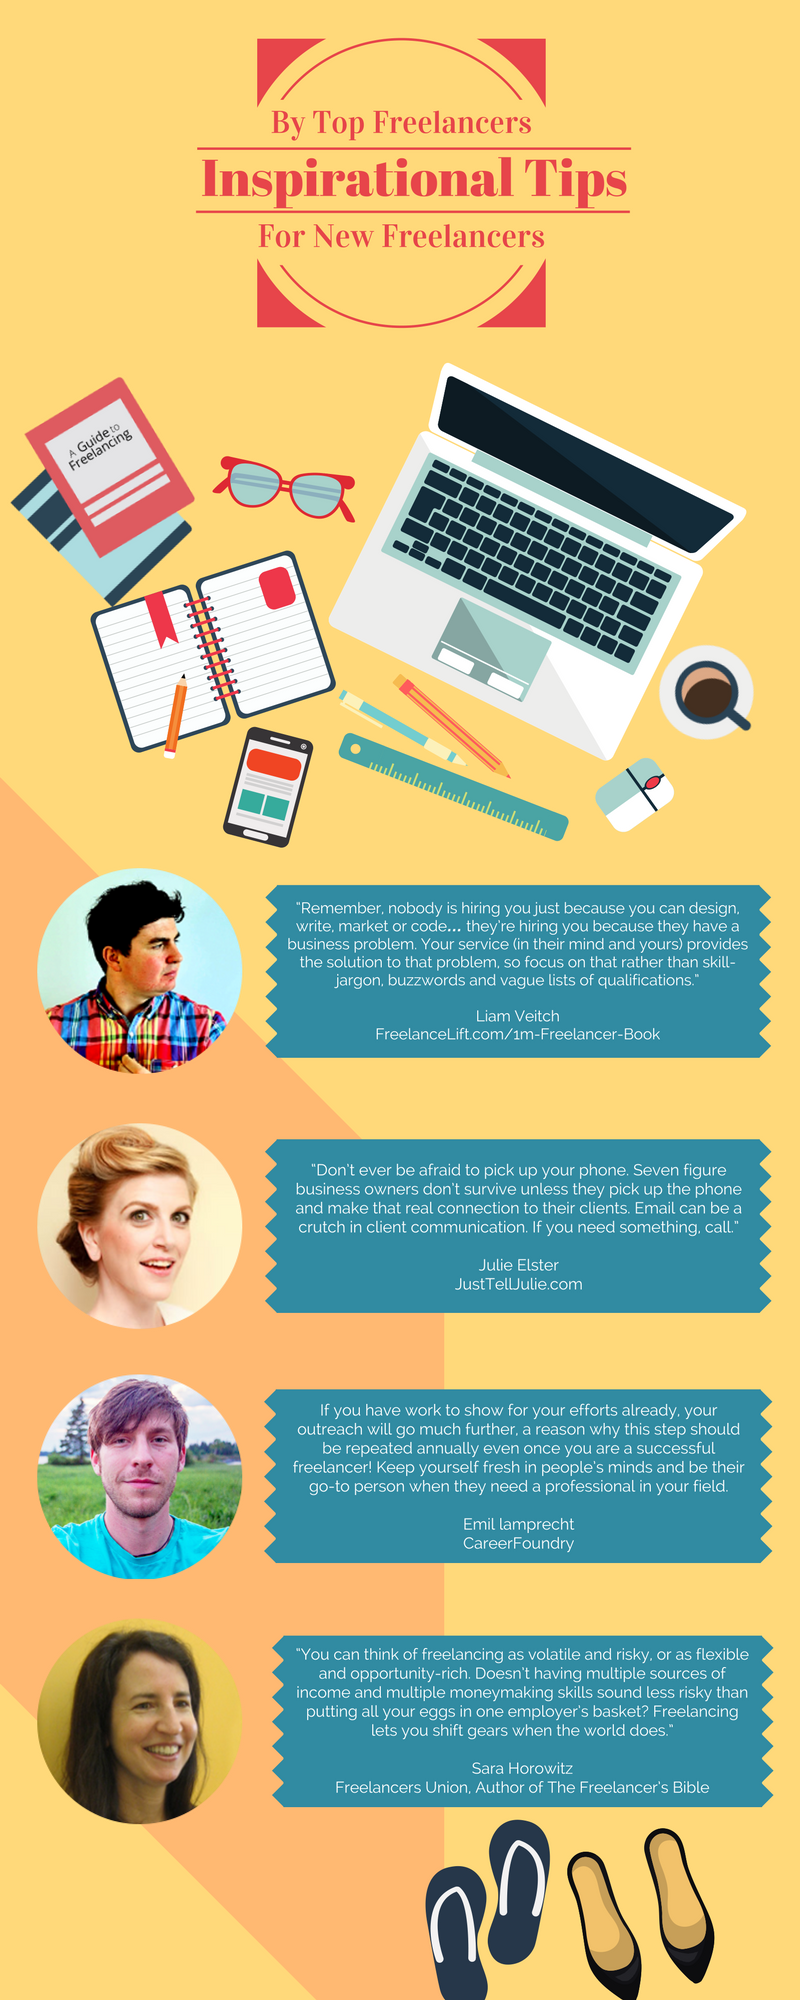 Here are the reasons why you should freelance!